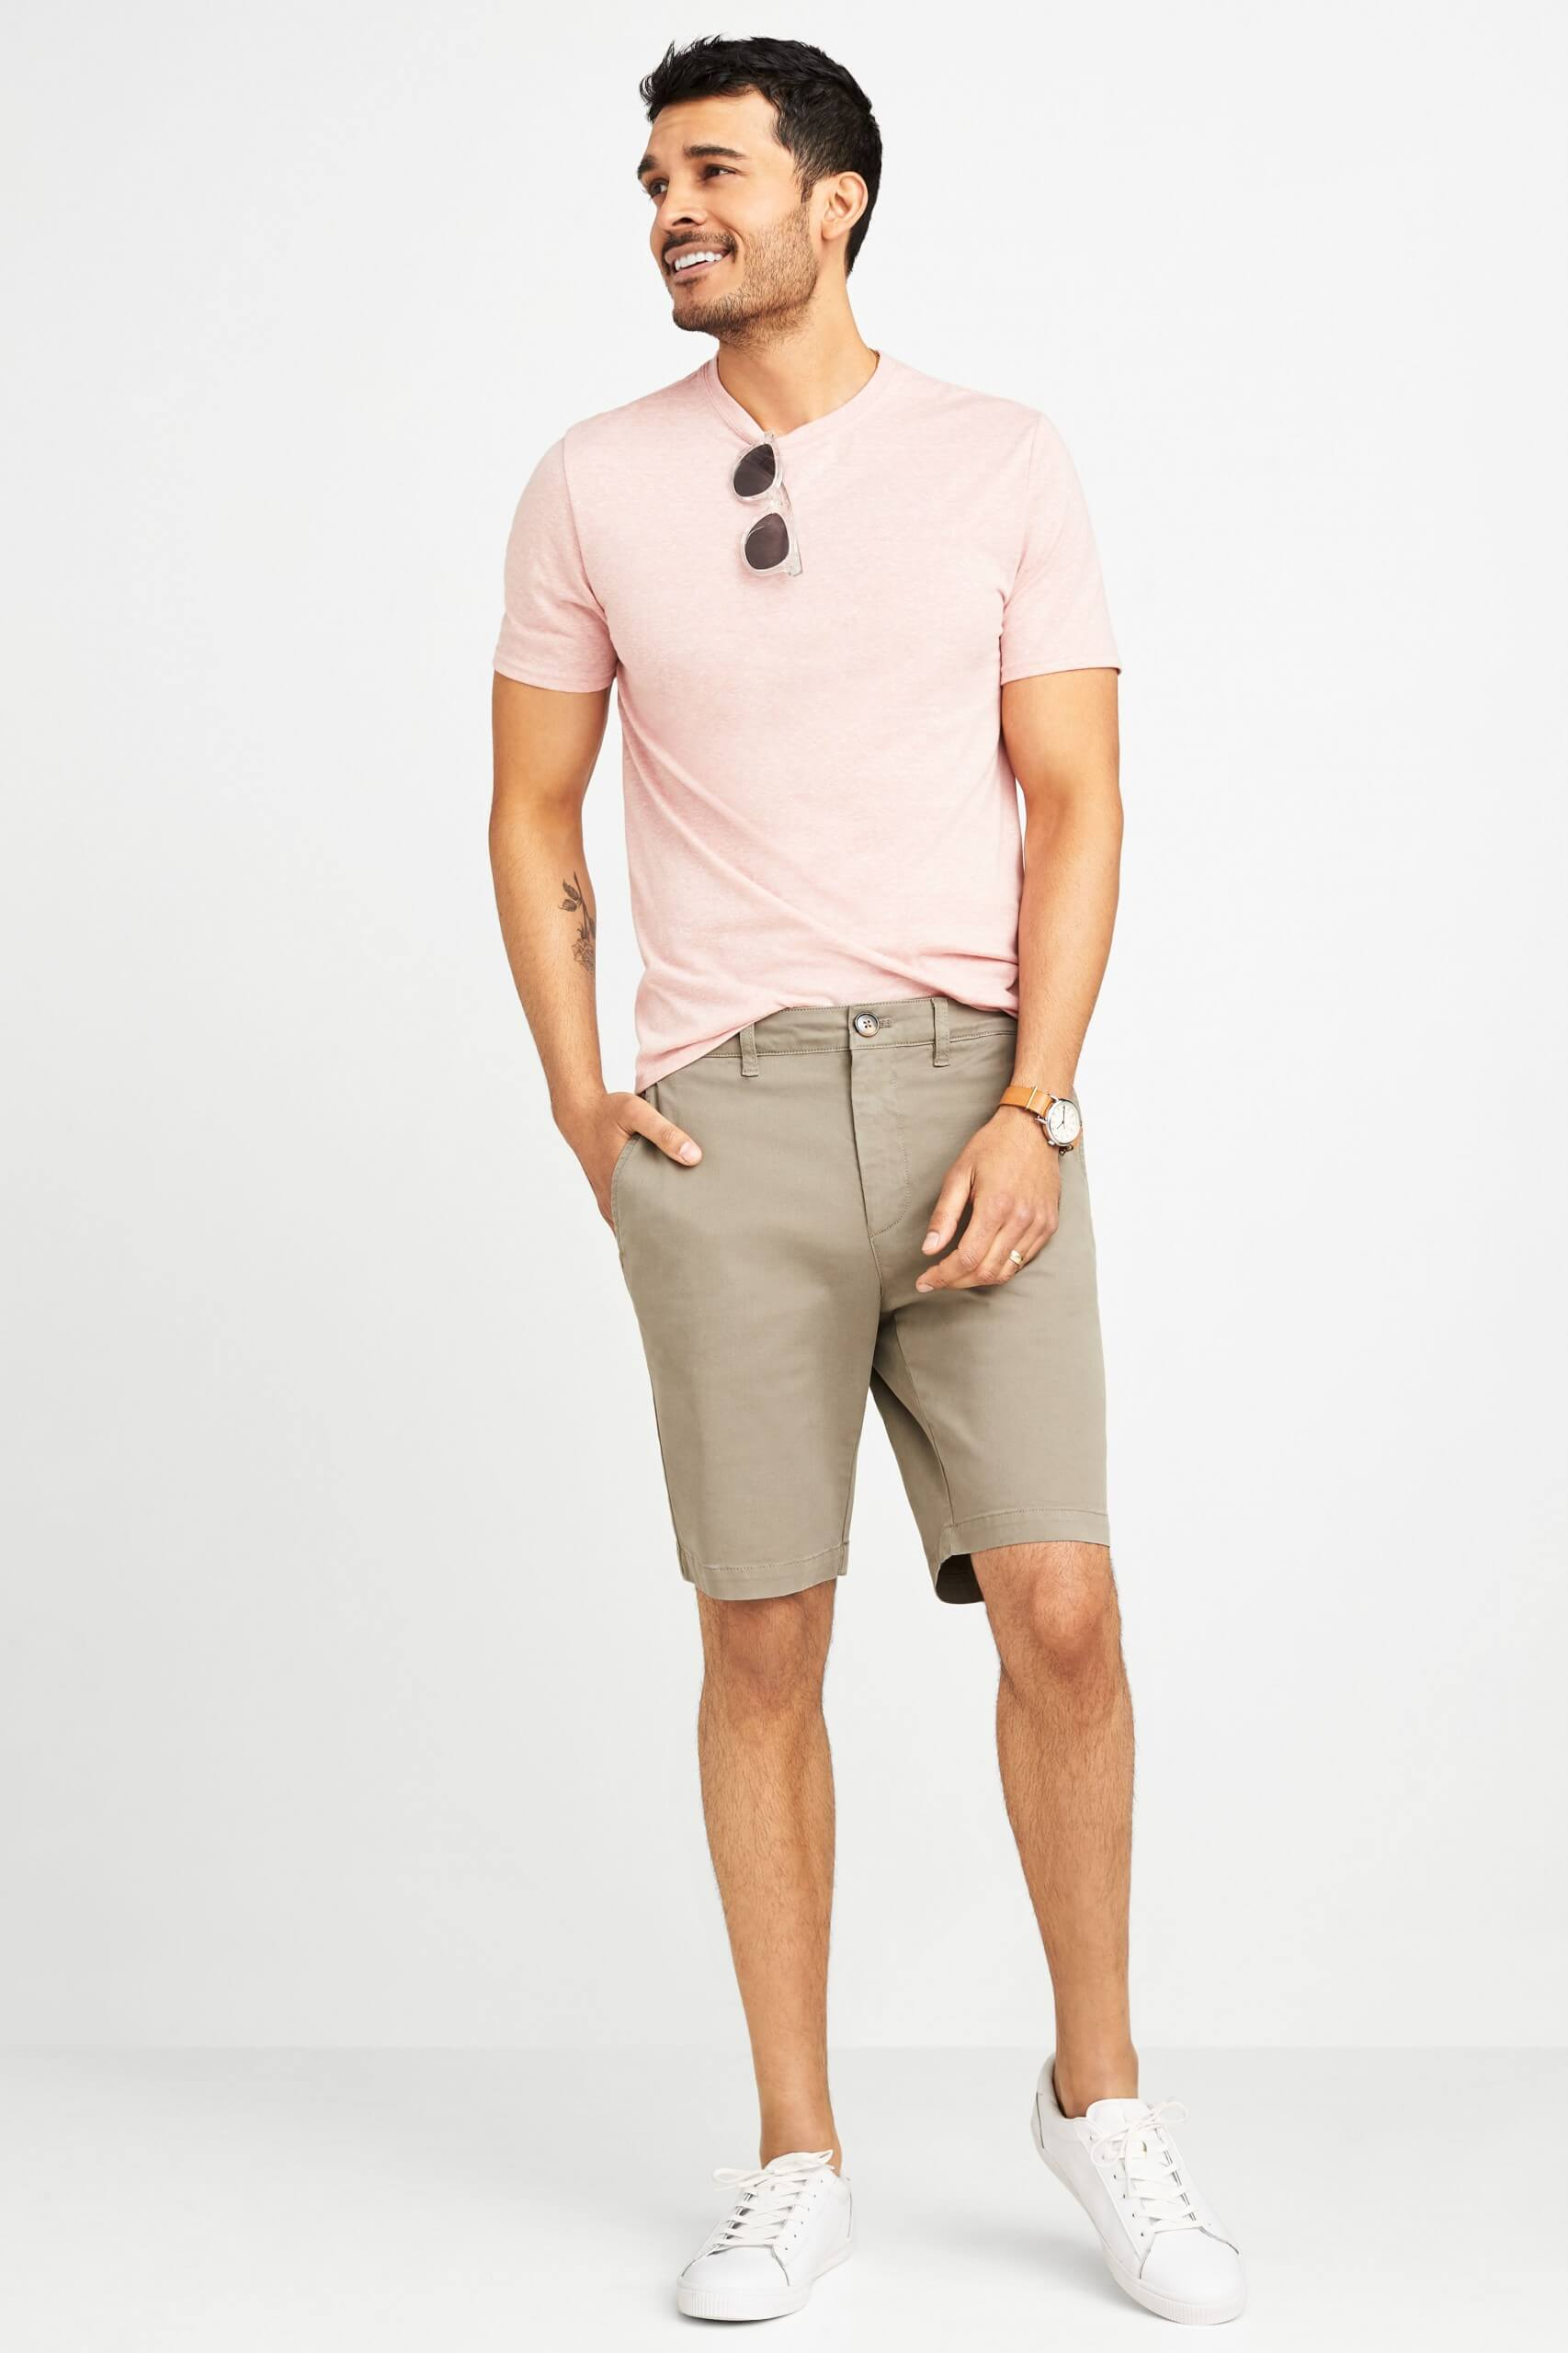 Stitch Fix Men's model wearing pink crew neck t-shirt, khaki shorts and white leather sneakers.